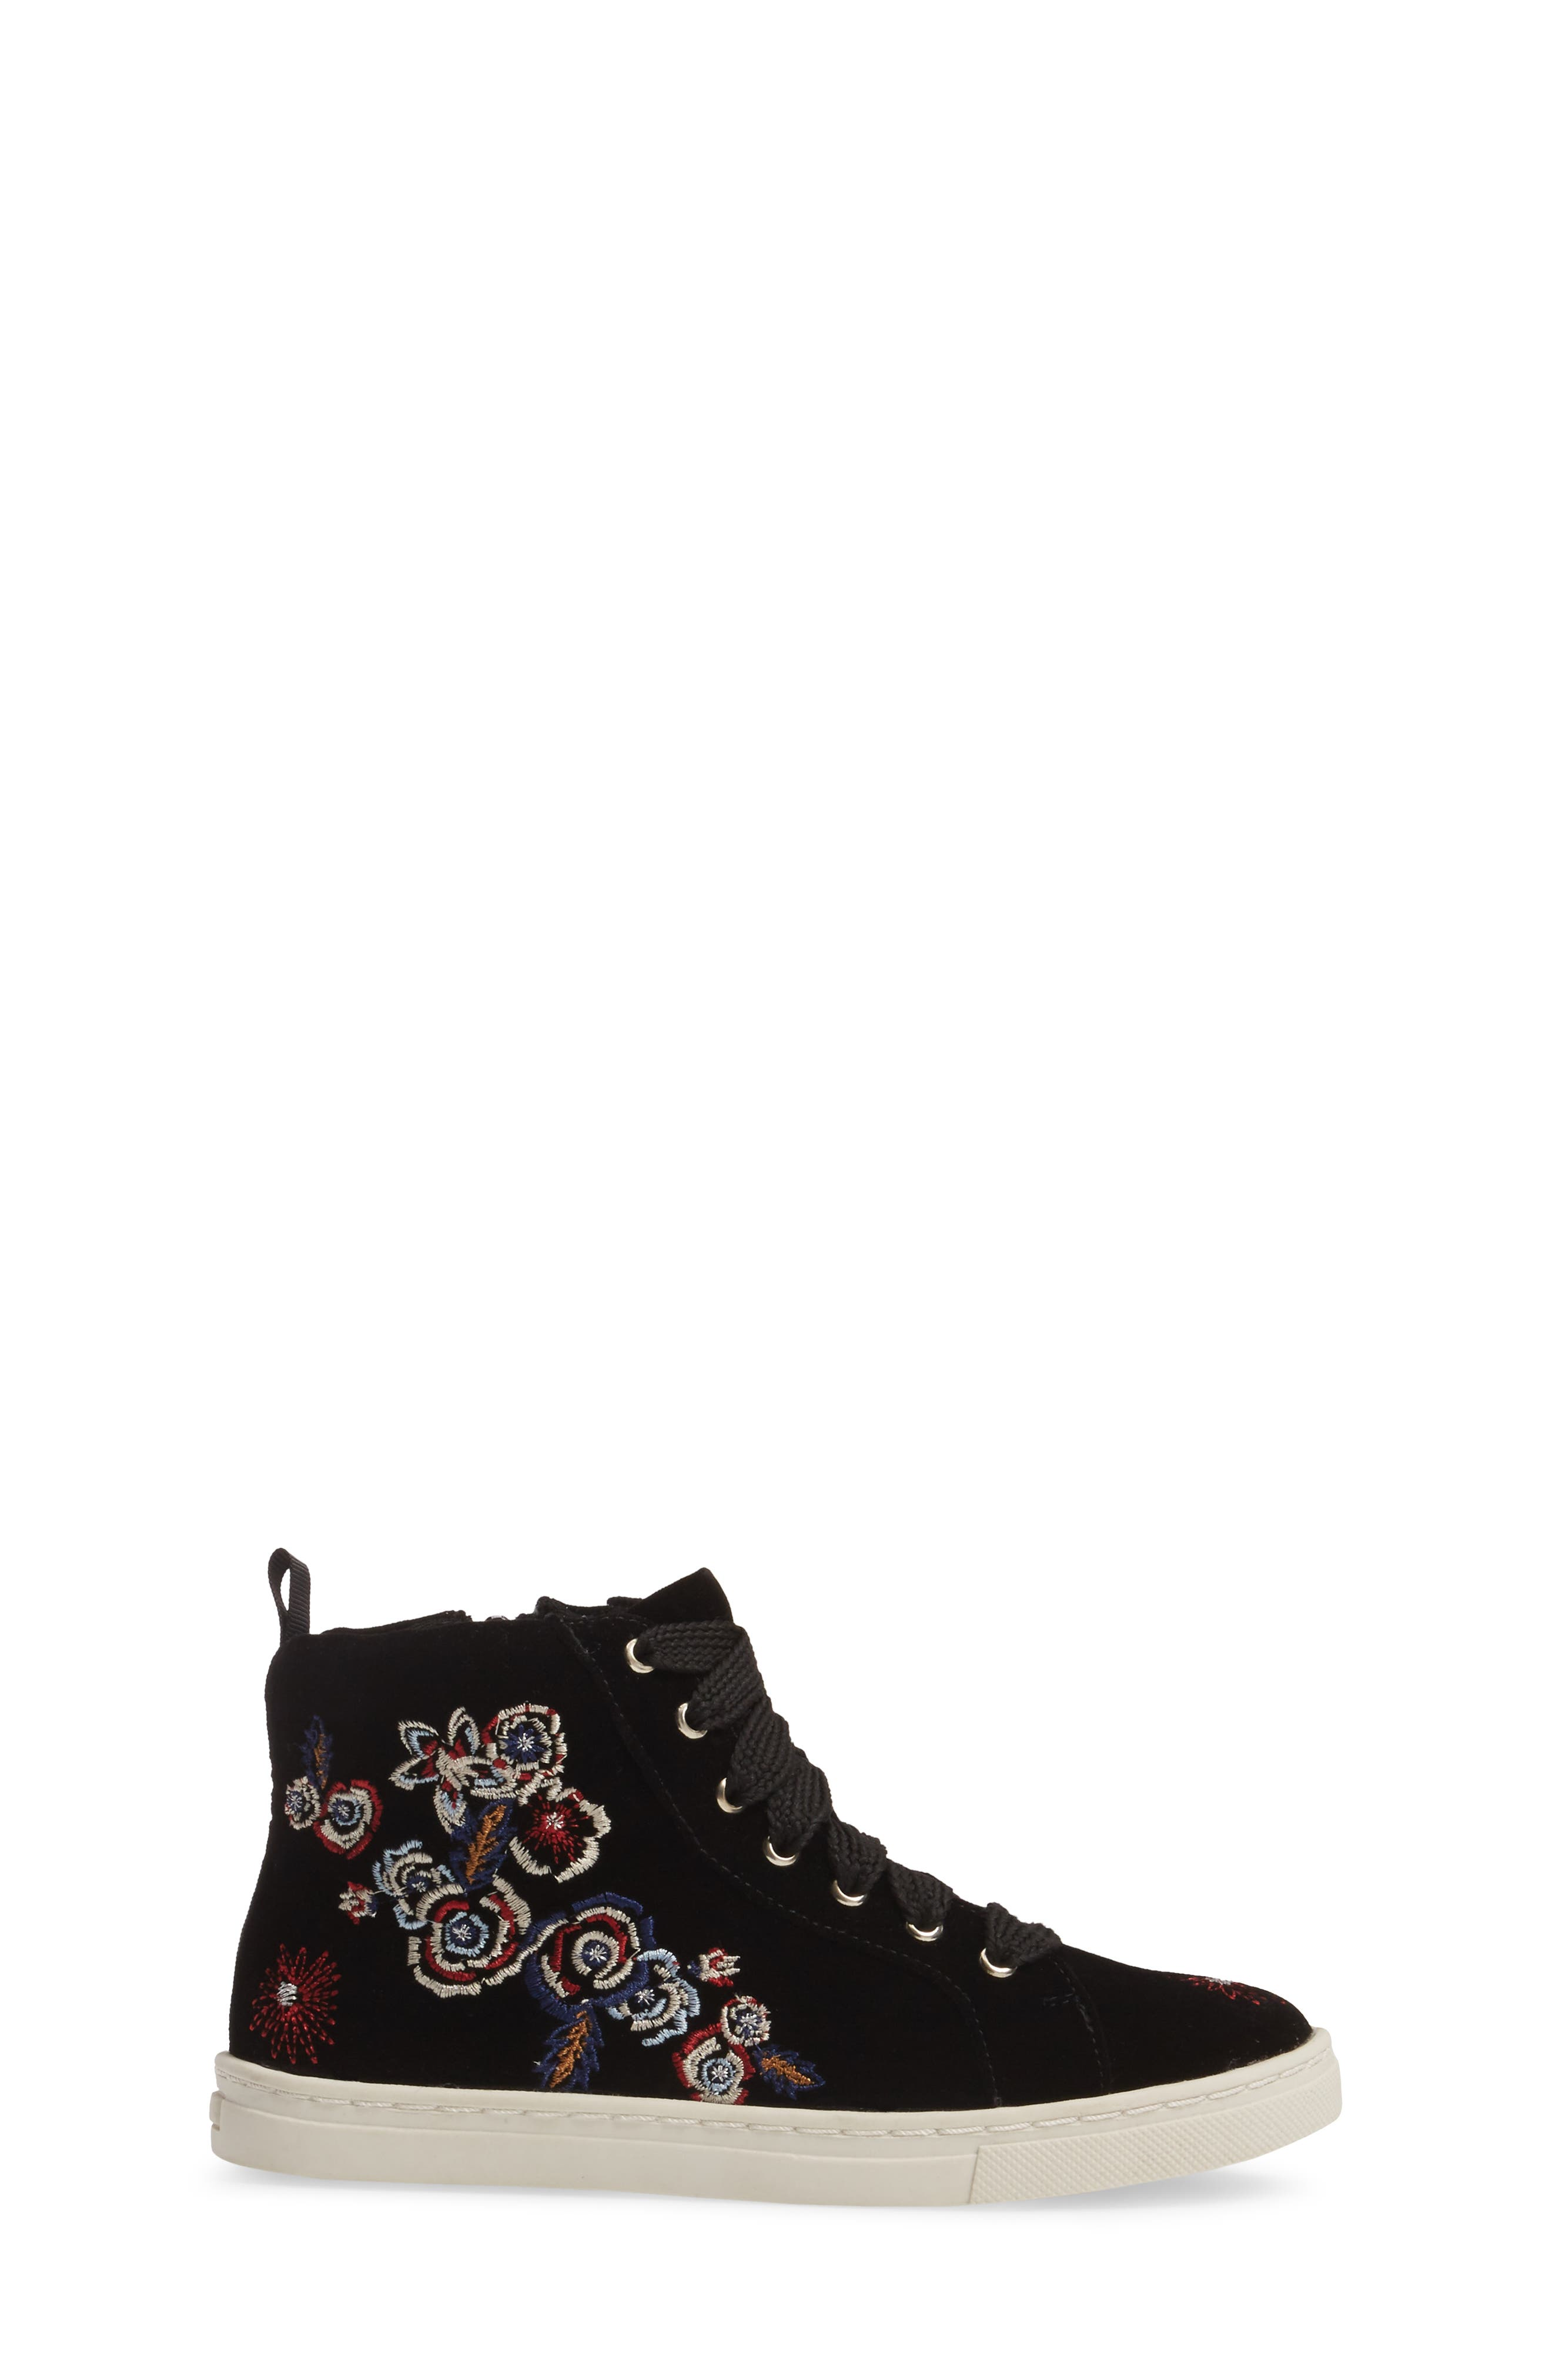 Zowen Embroidered High Top Sneaker,                             Alternate thumbnail 3, color,                             Black Multi Floral